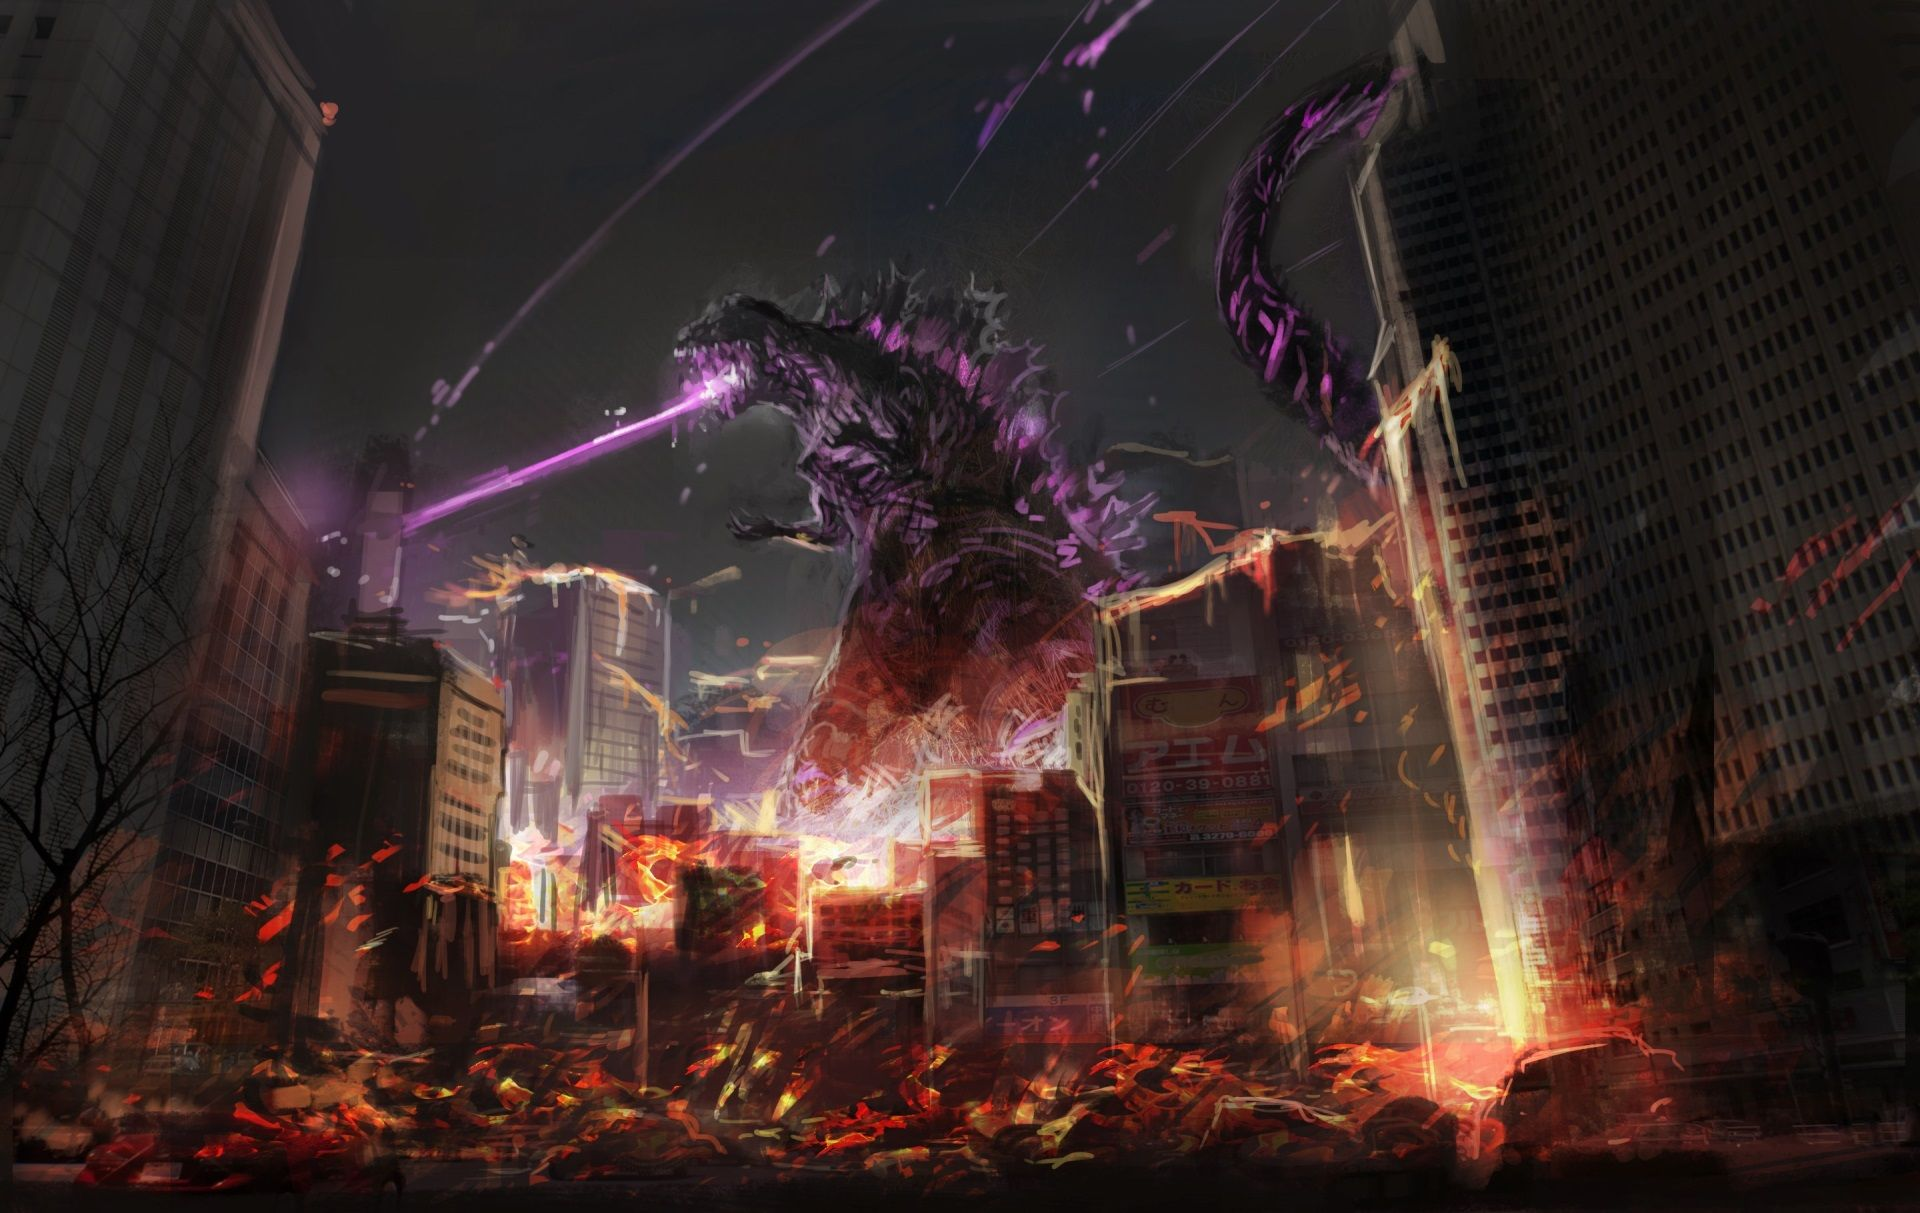 1920x1213 godzilla hd wallpaper amazing 1280x1024, Monstros